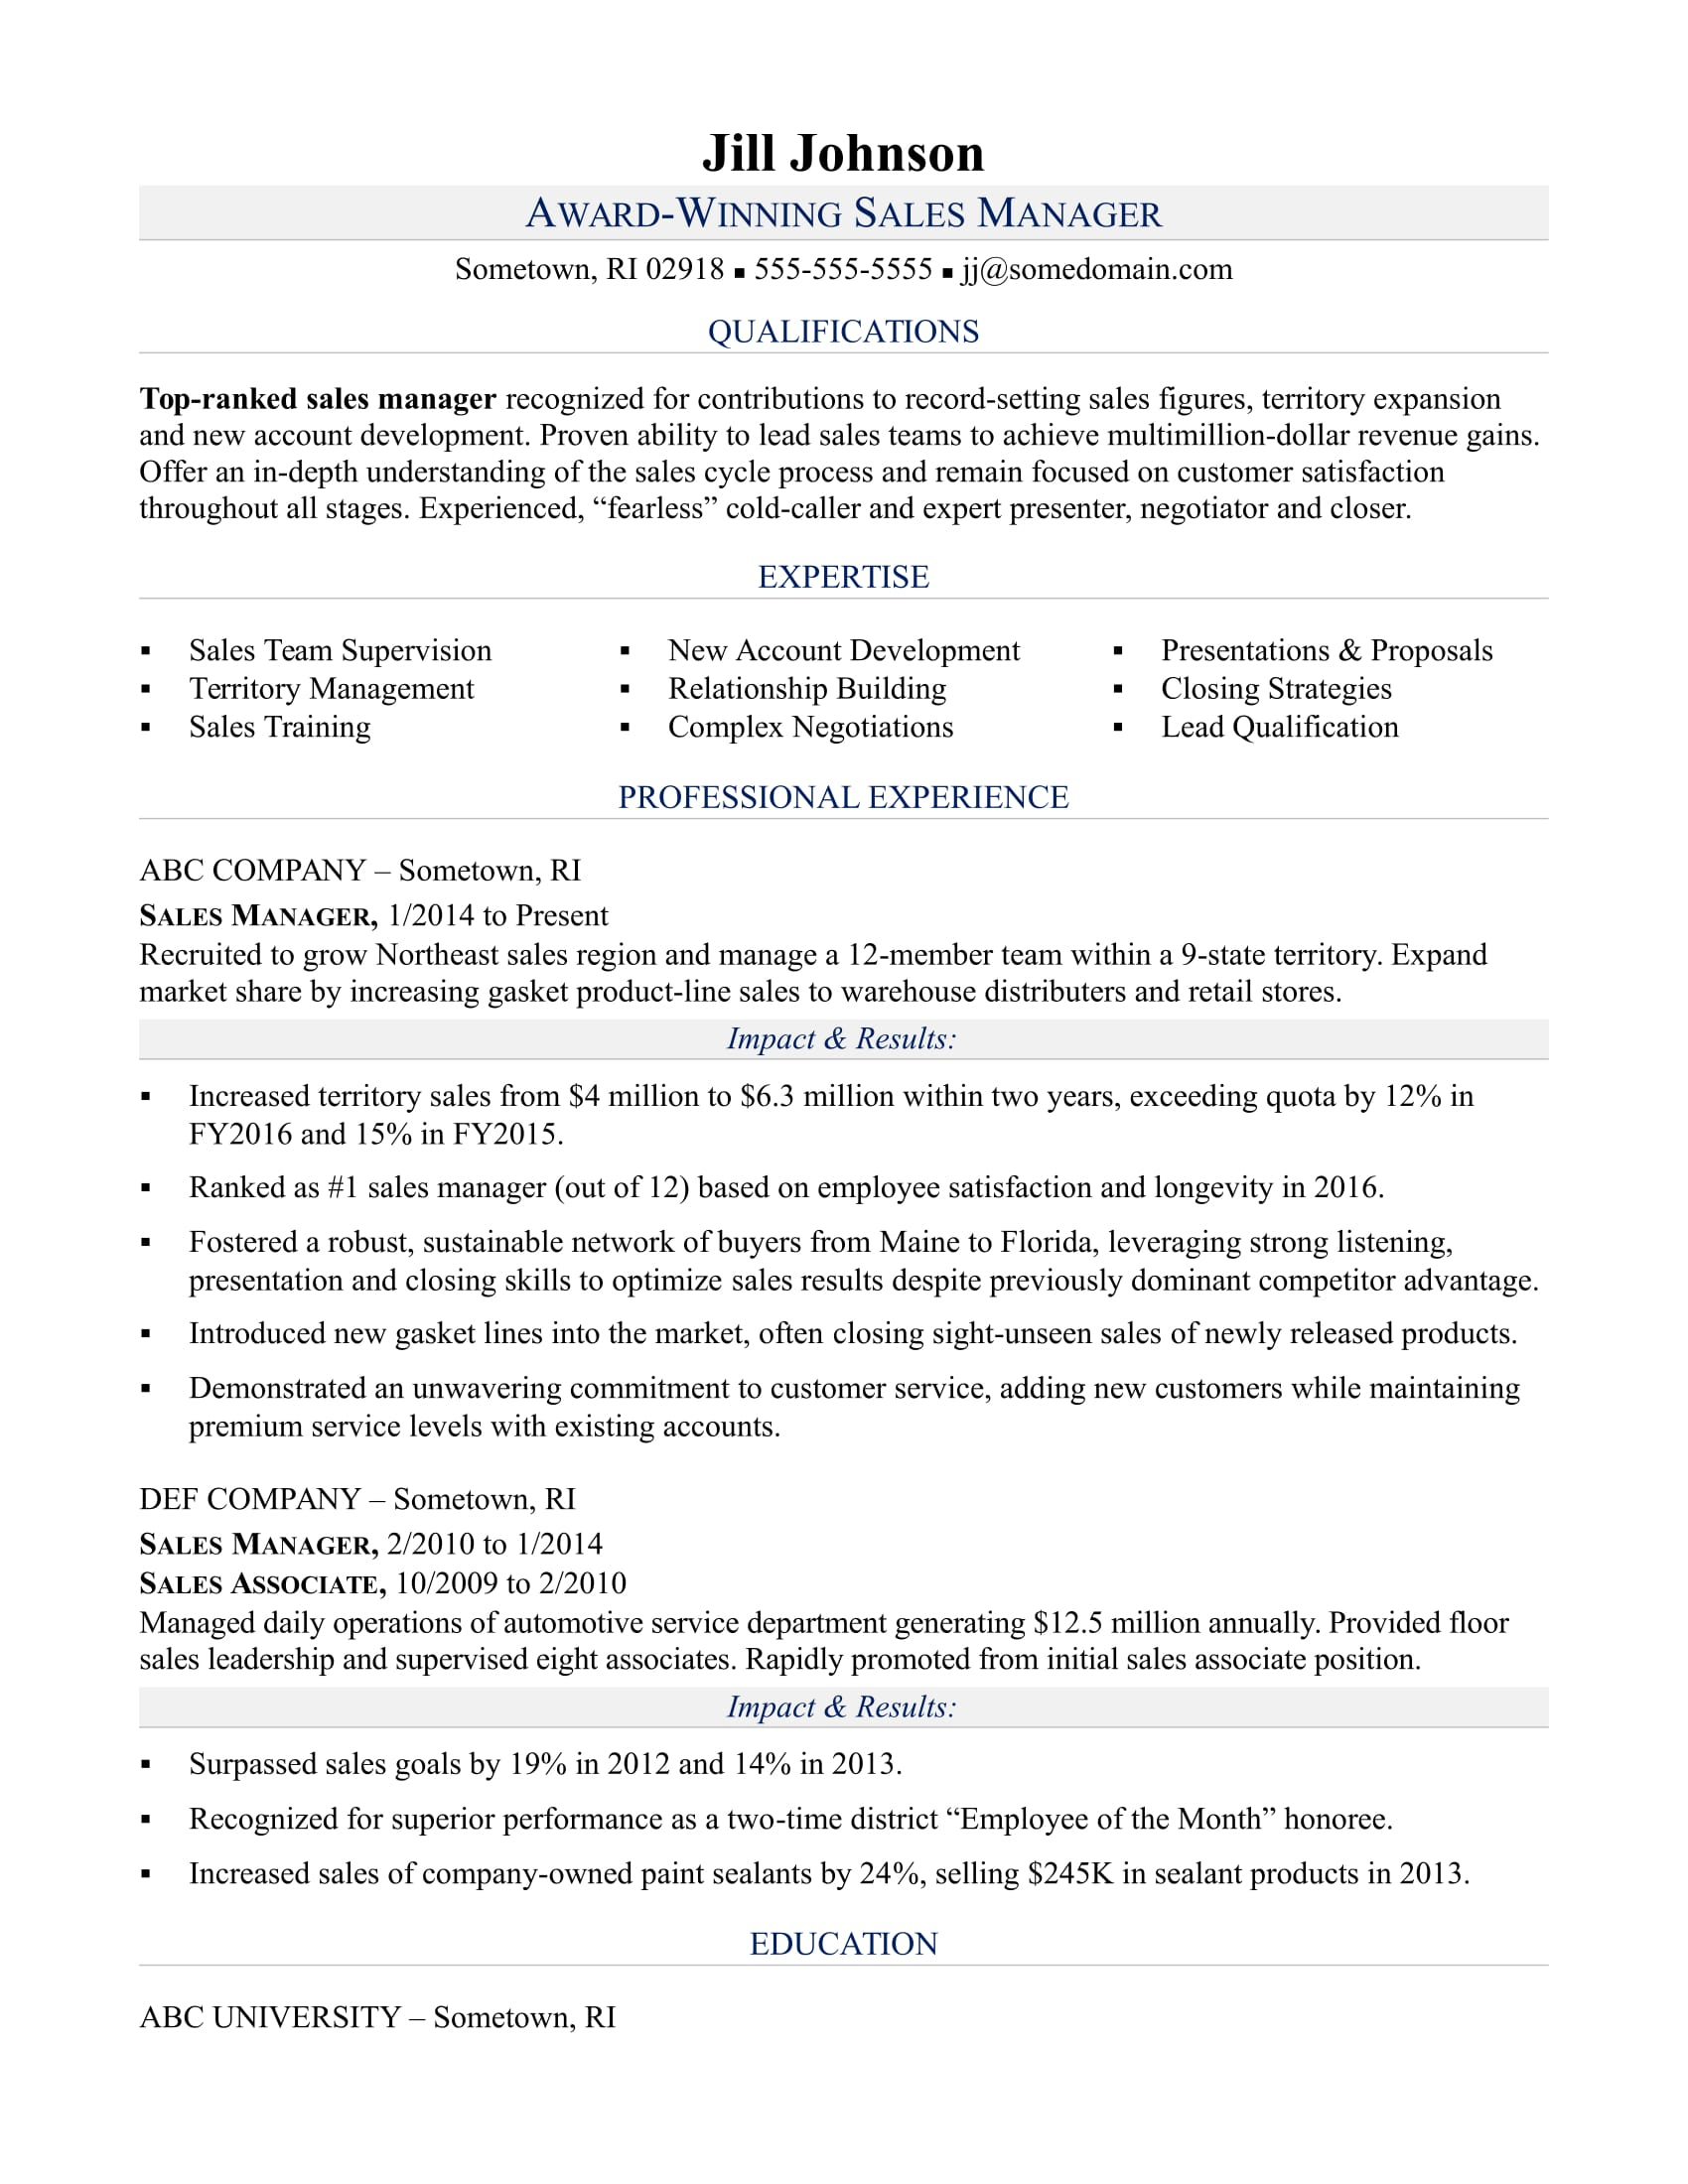 Sales manager resume sample monster sample resume for a sales manager thecheapjerseys Gallery